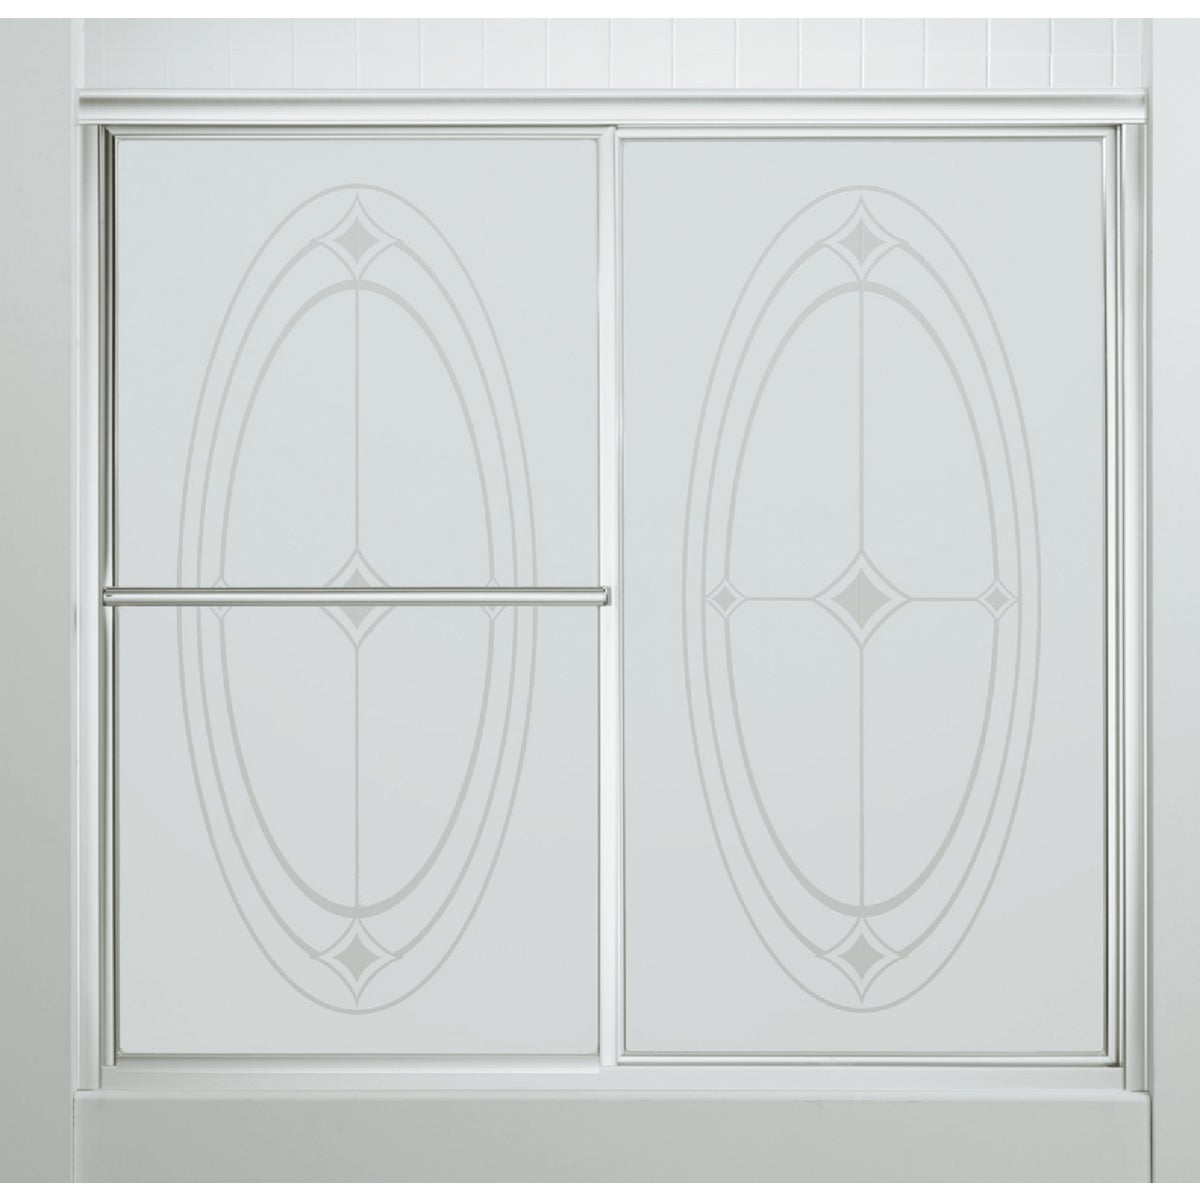 Sterling SILVER BY-PASS TUB DOOR 5907-59S